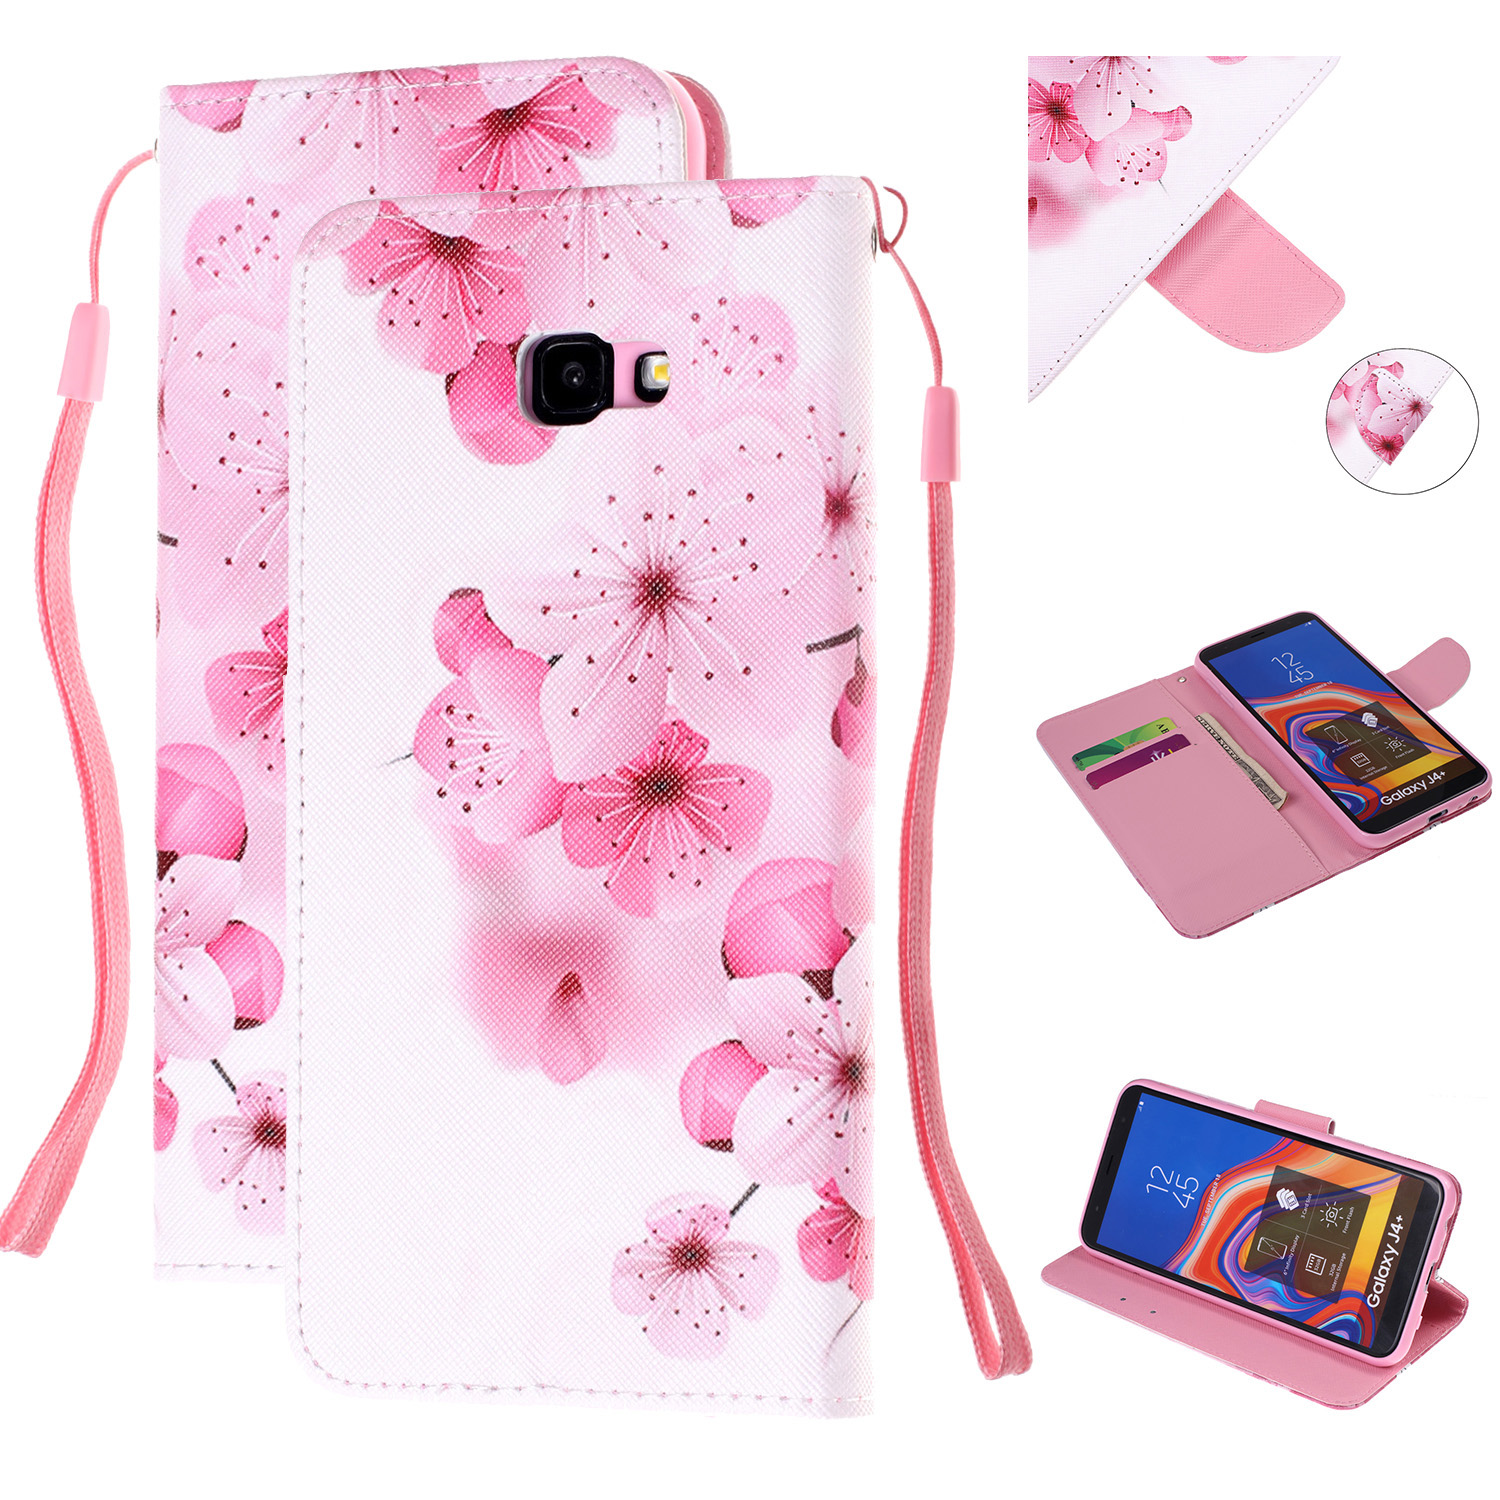 For Samsung J4 Plus/J6 Plus Cartoon Phone Shell Delicate Smartphone Case PU Leather Overall Protective Wallet Design peach blossom